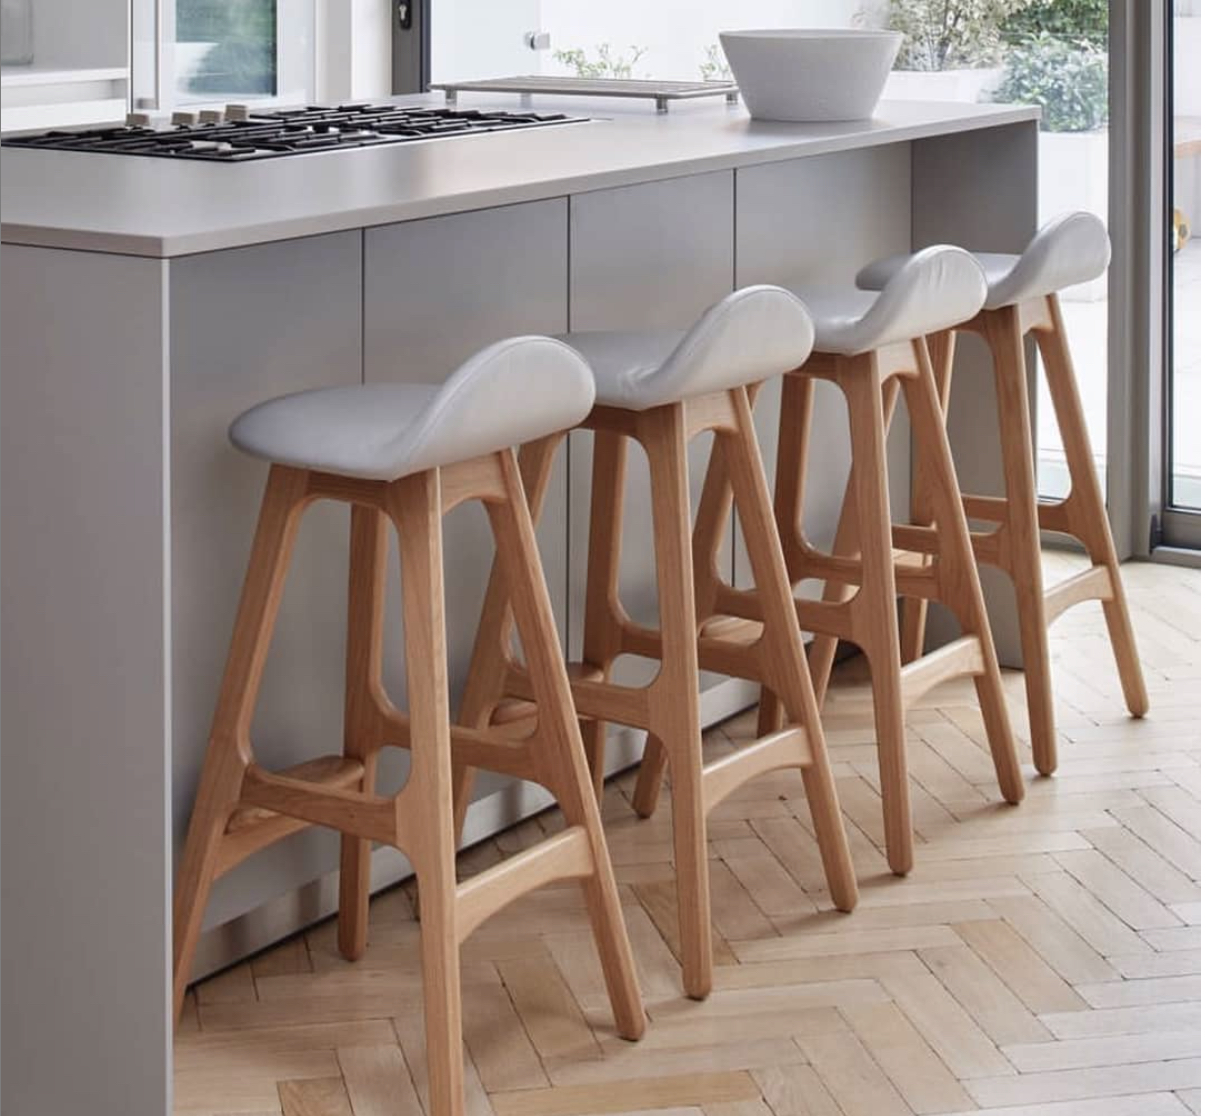 Now offering the Iconic Model 61 Barstool by ERIK BUCH - Blog Image